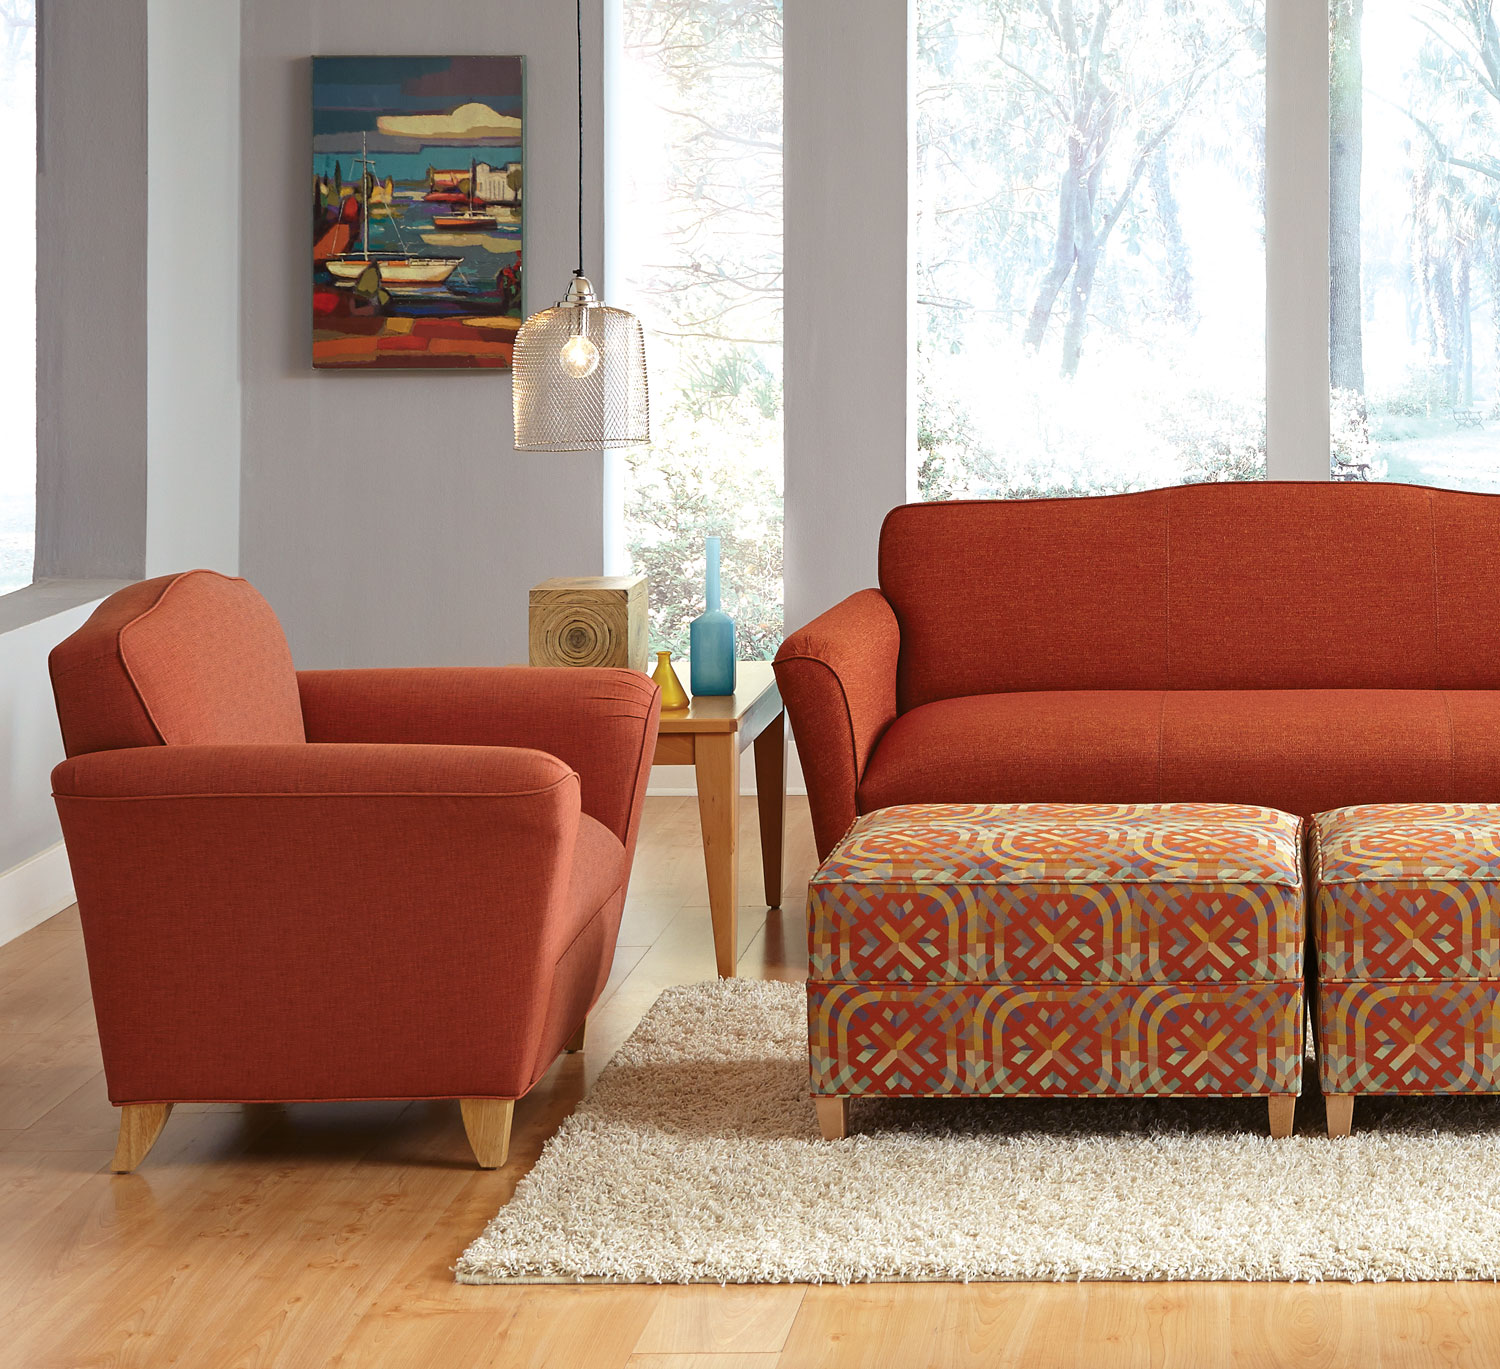 Kimberly Lounge And Reception Seating From HPFi   High Point Furniture  Industries